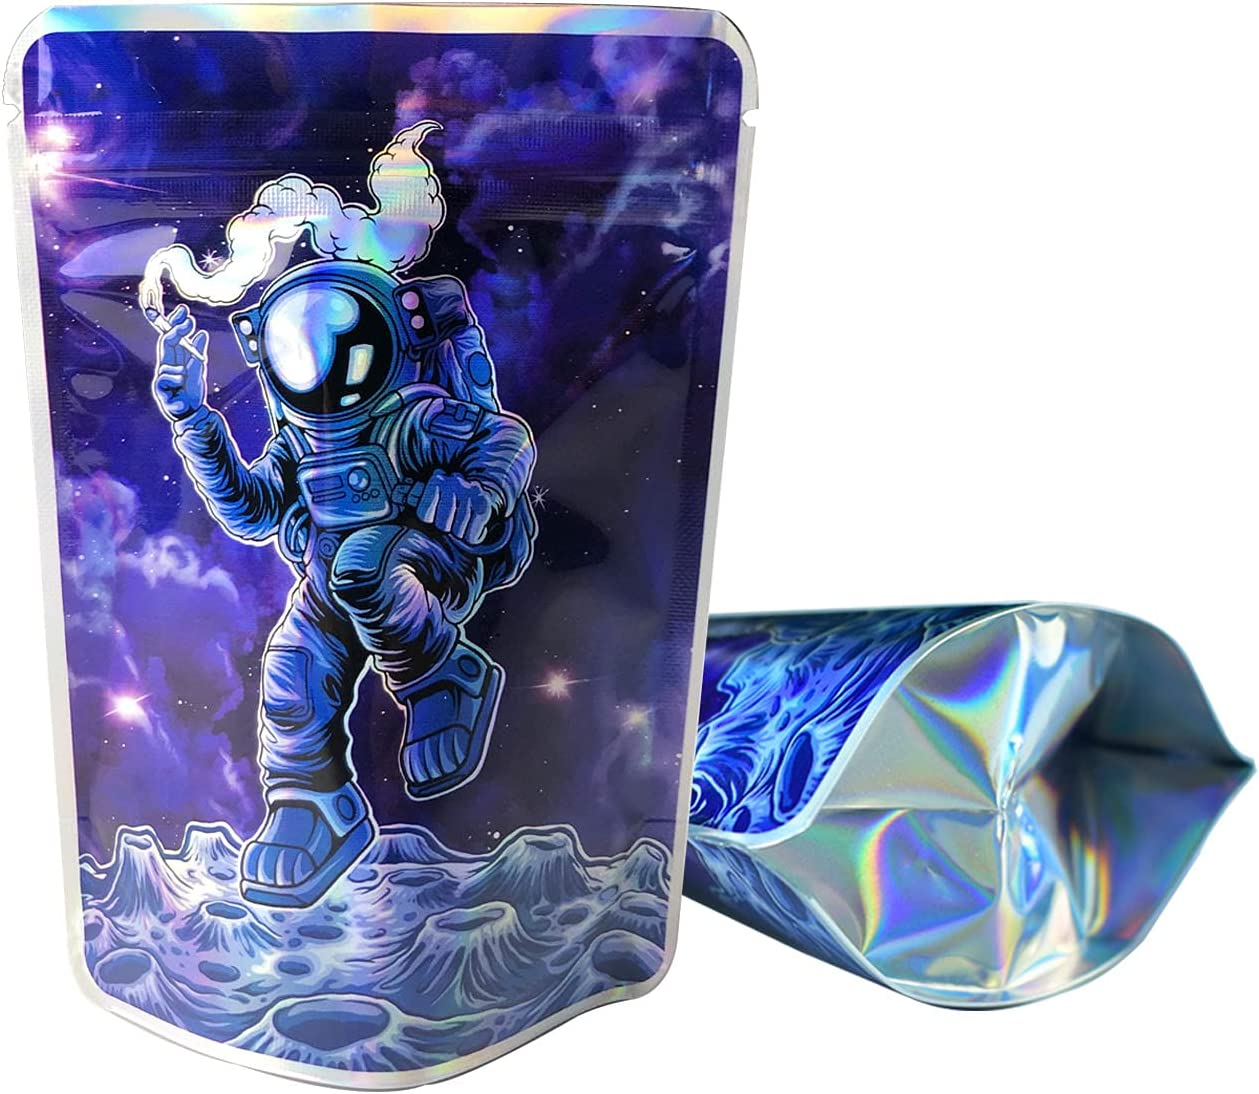 SpacyGas 100 Pieces Resealable Mylar Bags with Design,3.5 Packaging Baggies,Zip Lock Printed Mylar Foil Bags,Food Stand-up Storage Pouch,3.6x5 Inches,Holographic Blue